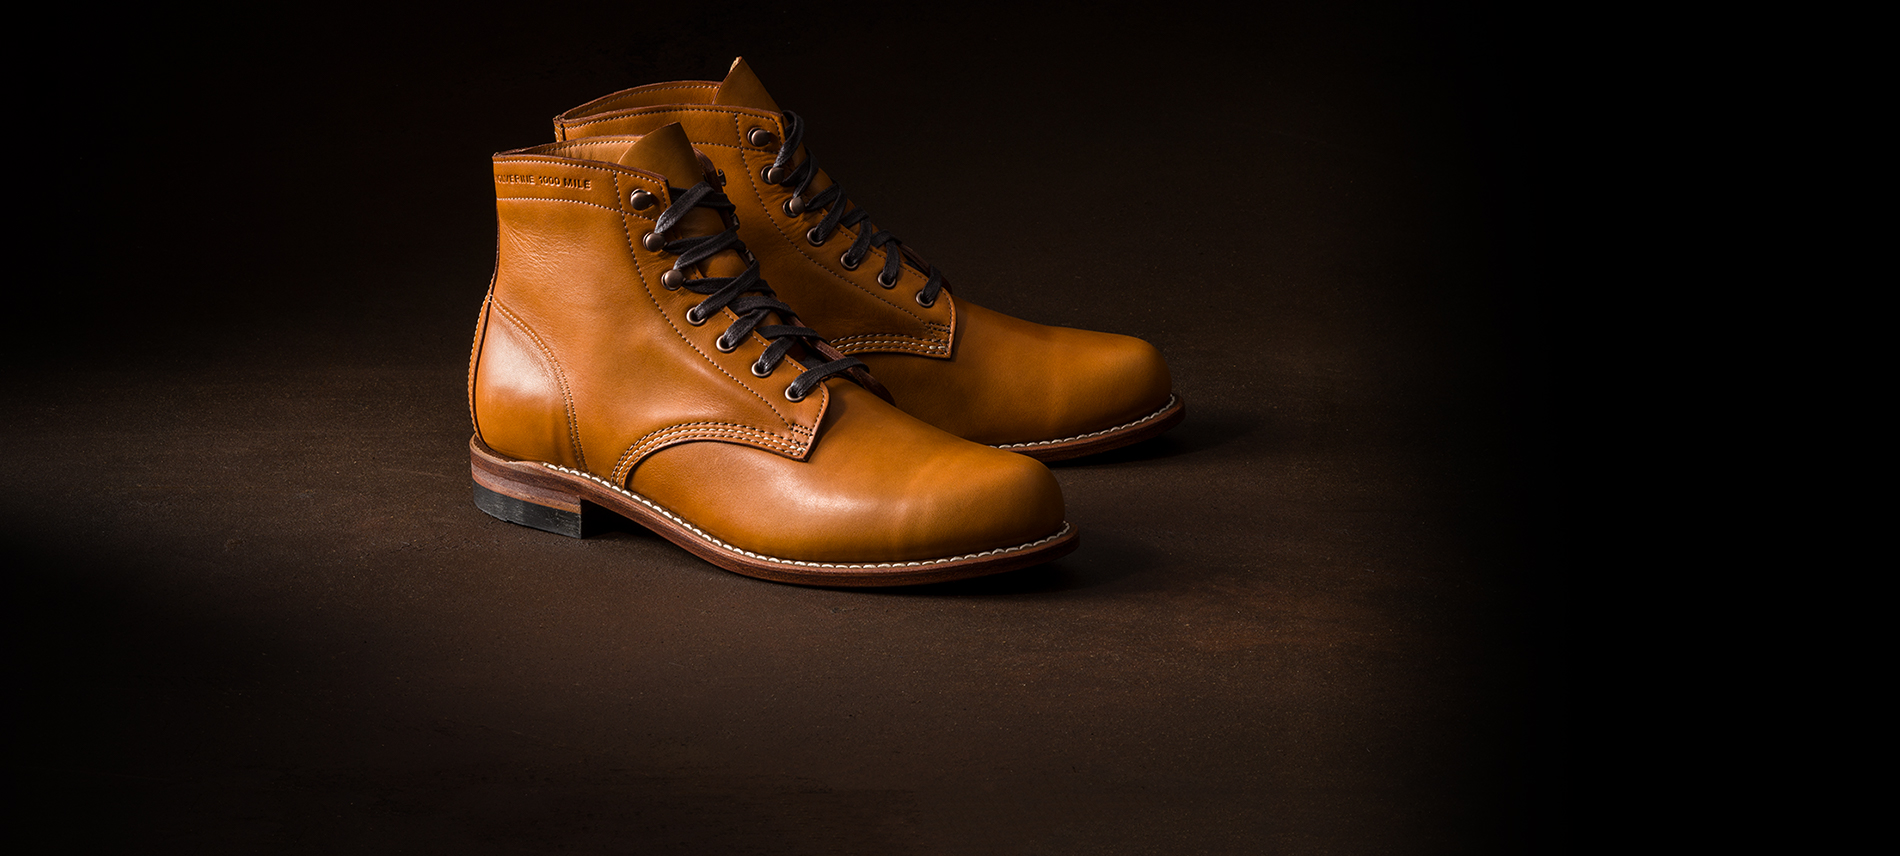 fab8f3b4def Official Wolverine.com  Tough Work Boots